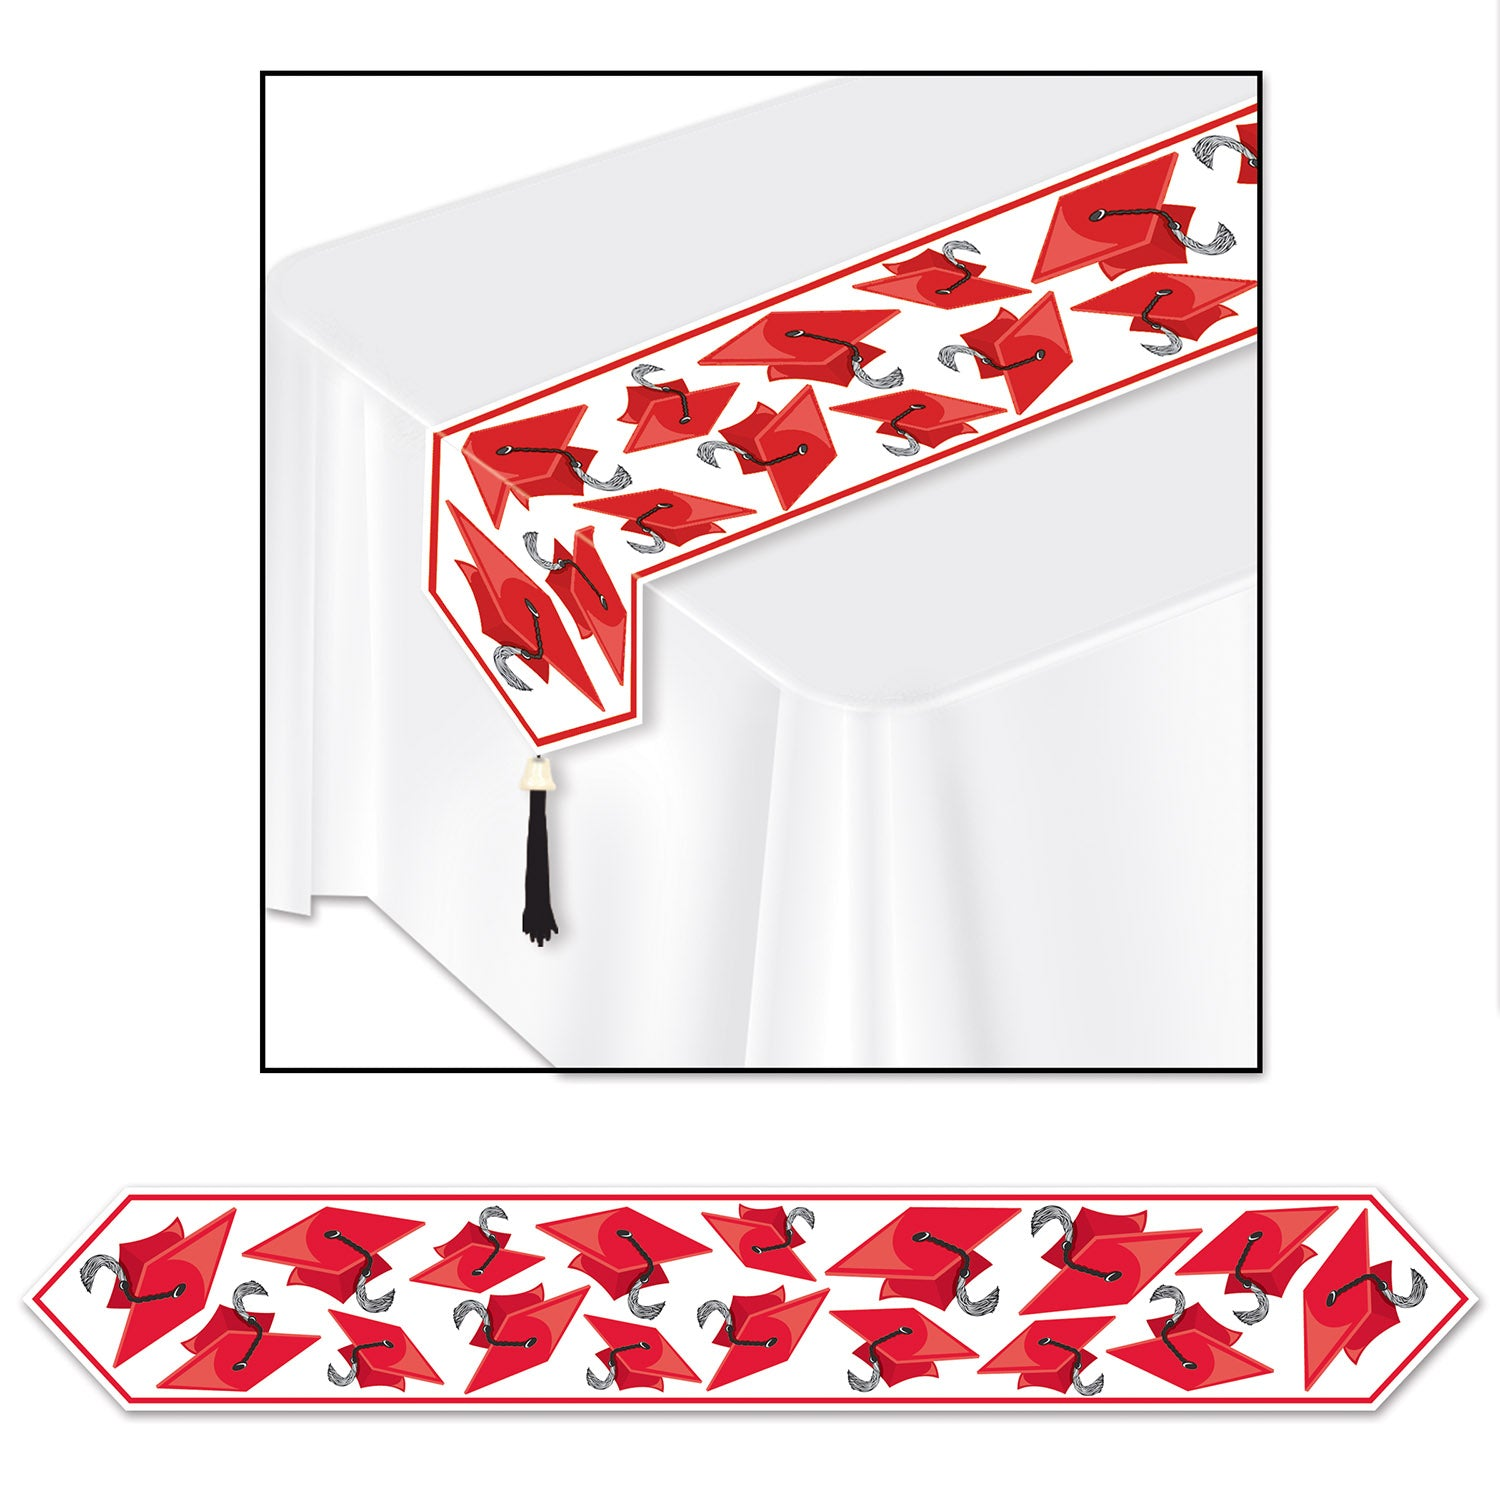 Printed Grad Cap Table Runner, red by Beistle - Graduation Theme Decorations